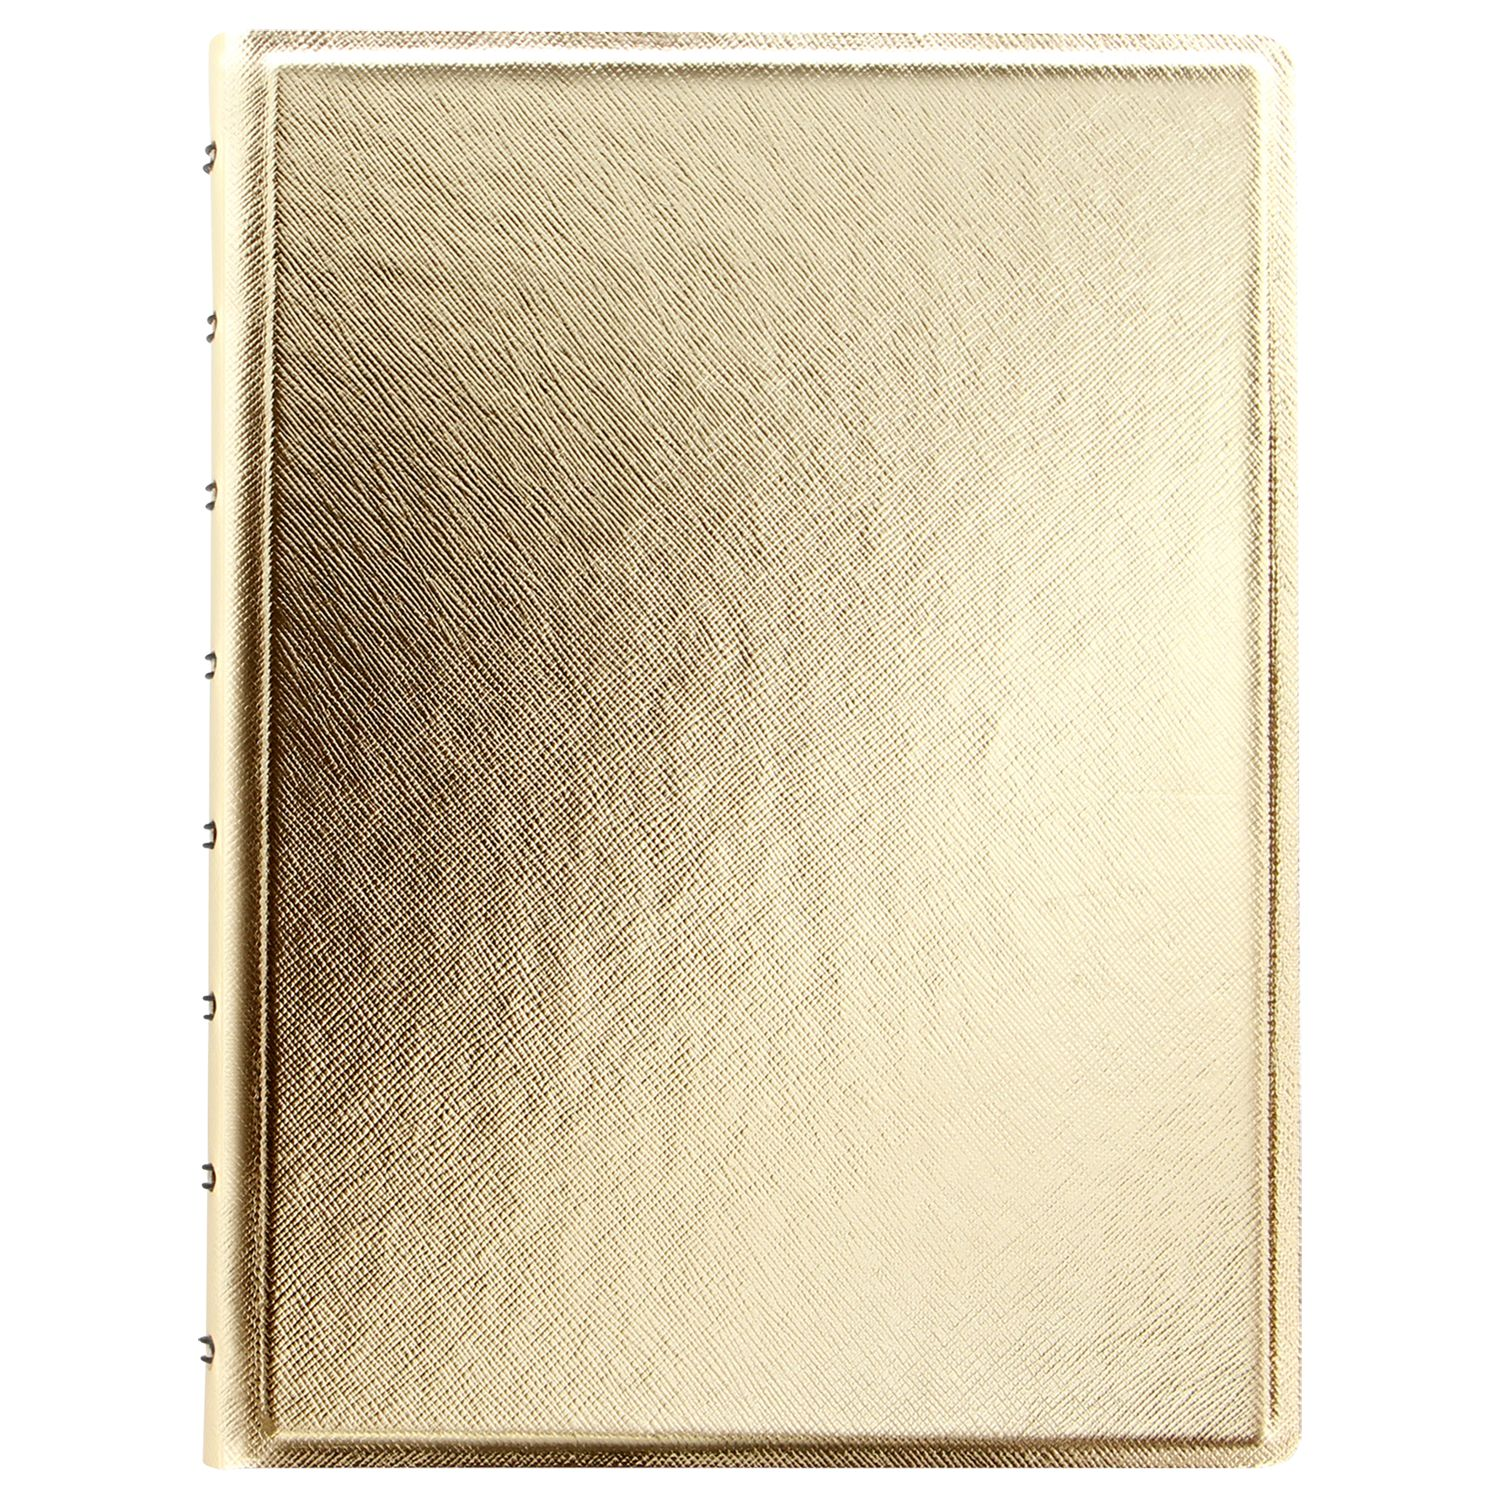 Paul Smith Small Pocket Notebook Compare Bluewater Ruled A6 Moleskine Gold